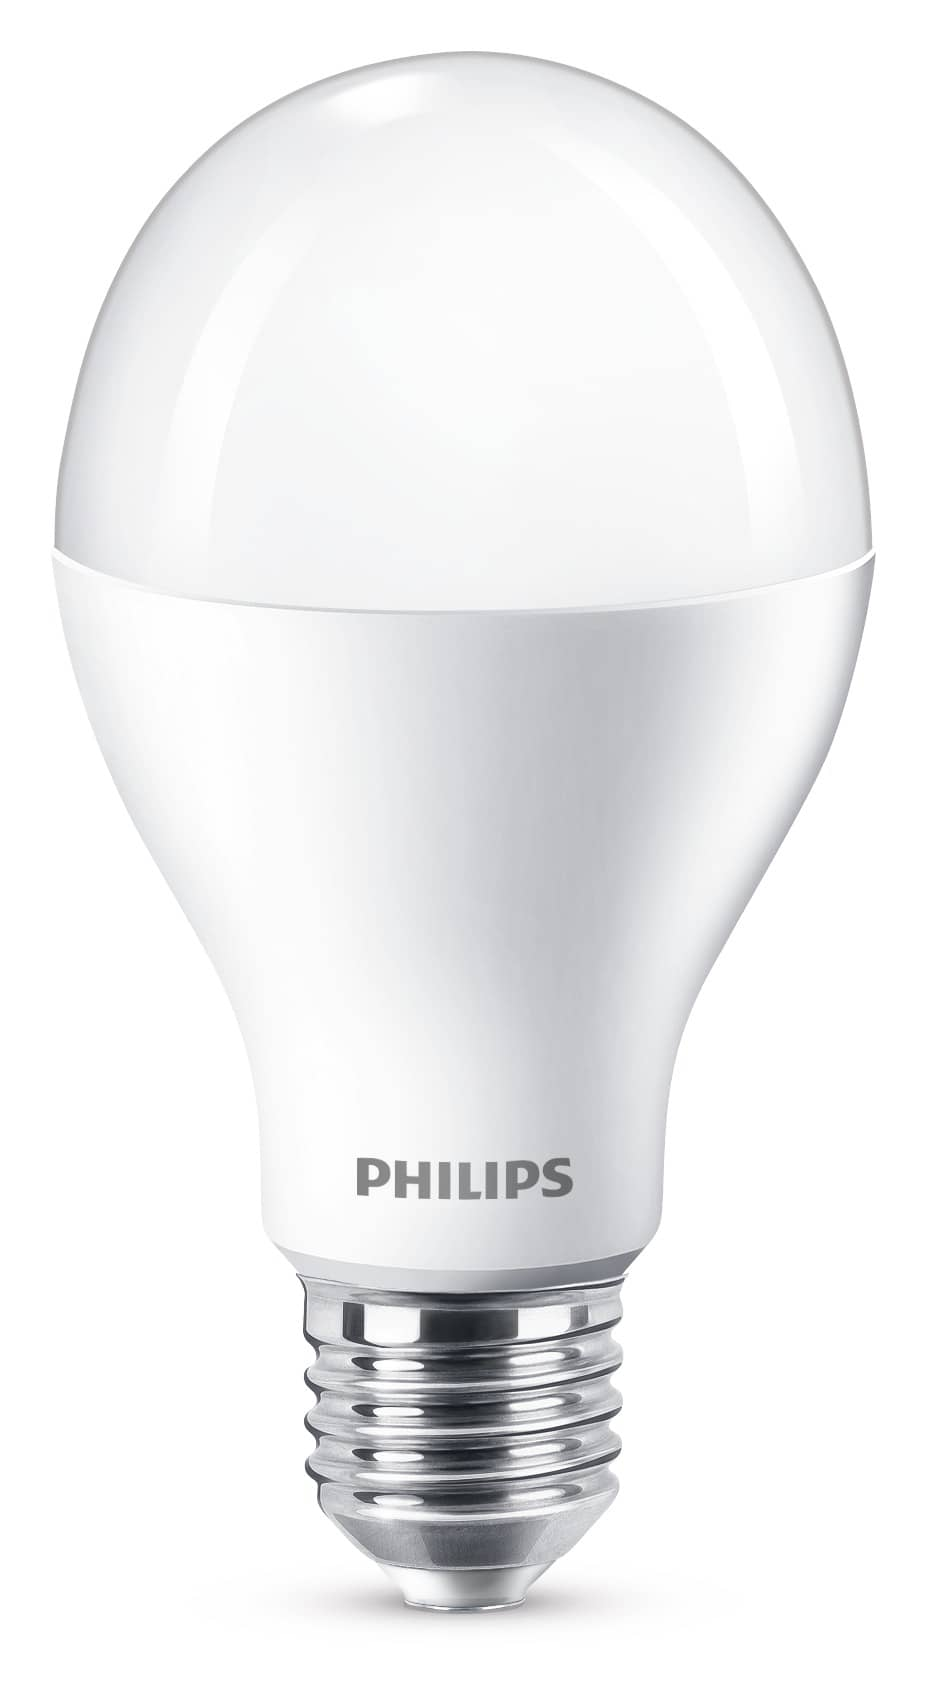 philips e27 led birne 16w 1521lm warmweiss dimmbar jetzt. Black Bedroom Furniture Sets. Home Design Ideas